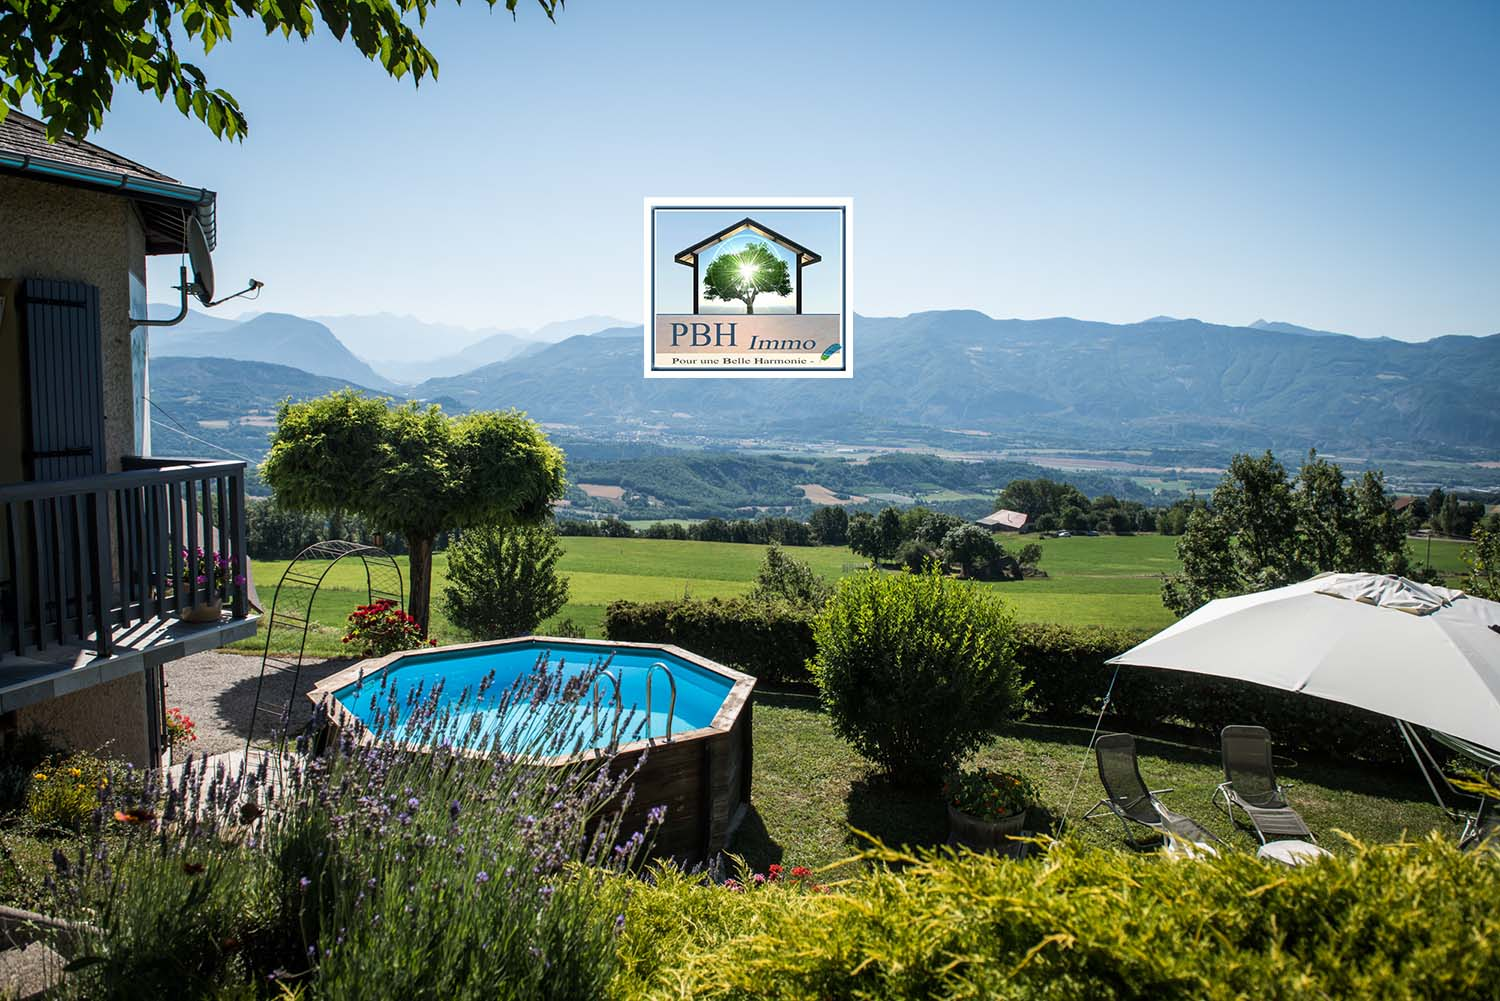 Vente Maison/Villa SIGOYER 05130 Hautes Alpes FRANCE